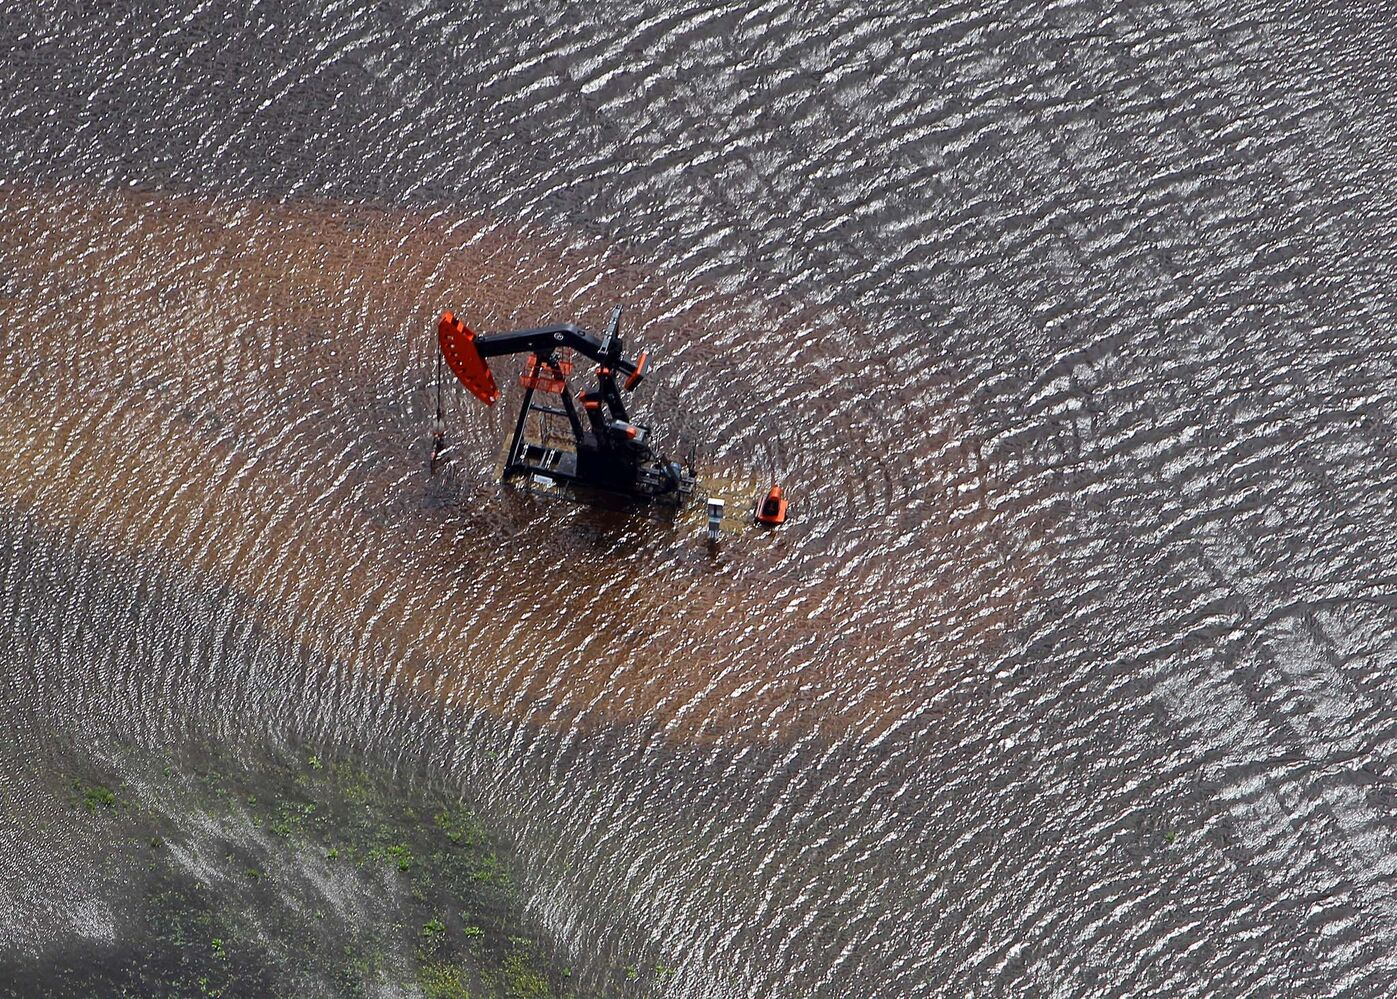 Oil and water mix as floodwaters overrun fields near Cromer, Manitoba on Monday afternoon.